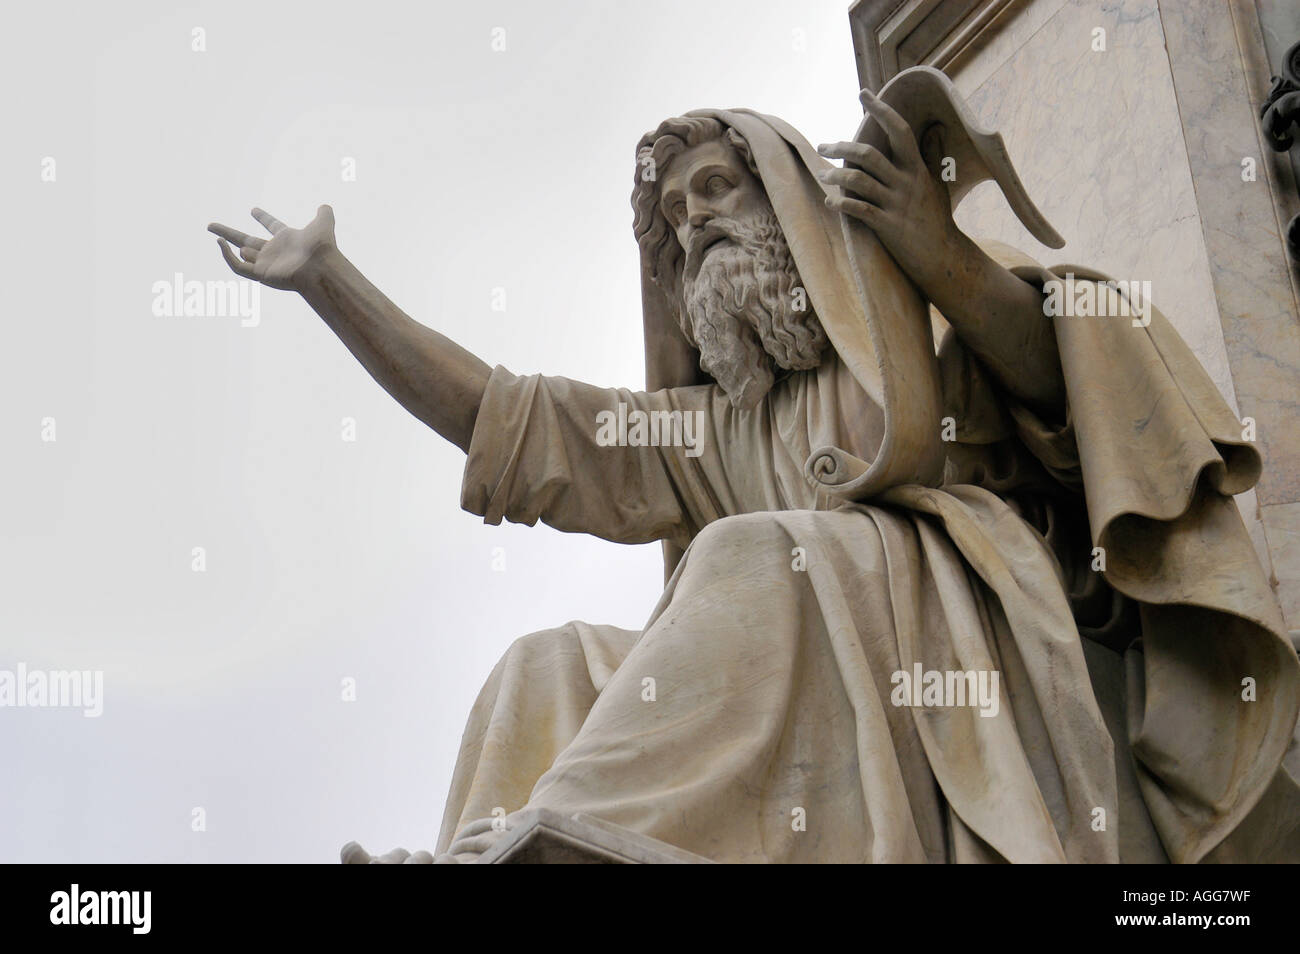 statue of Moses an the ten commandments, Rome, Italy - Stock Image